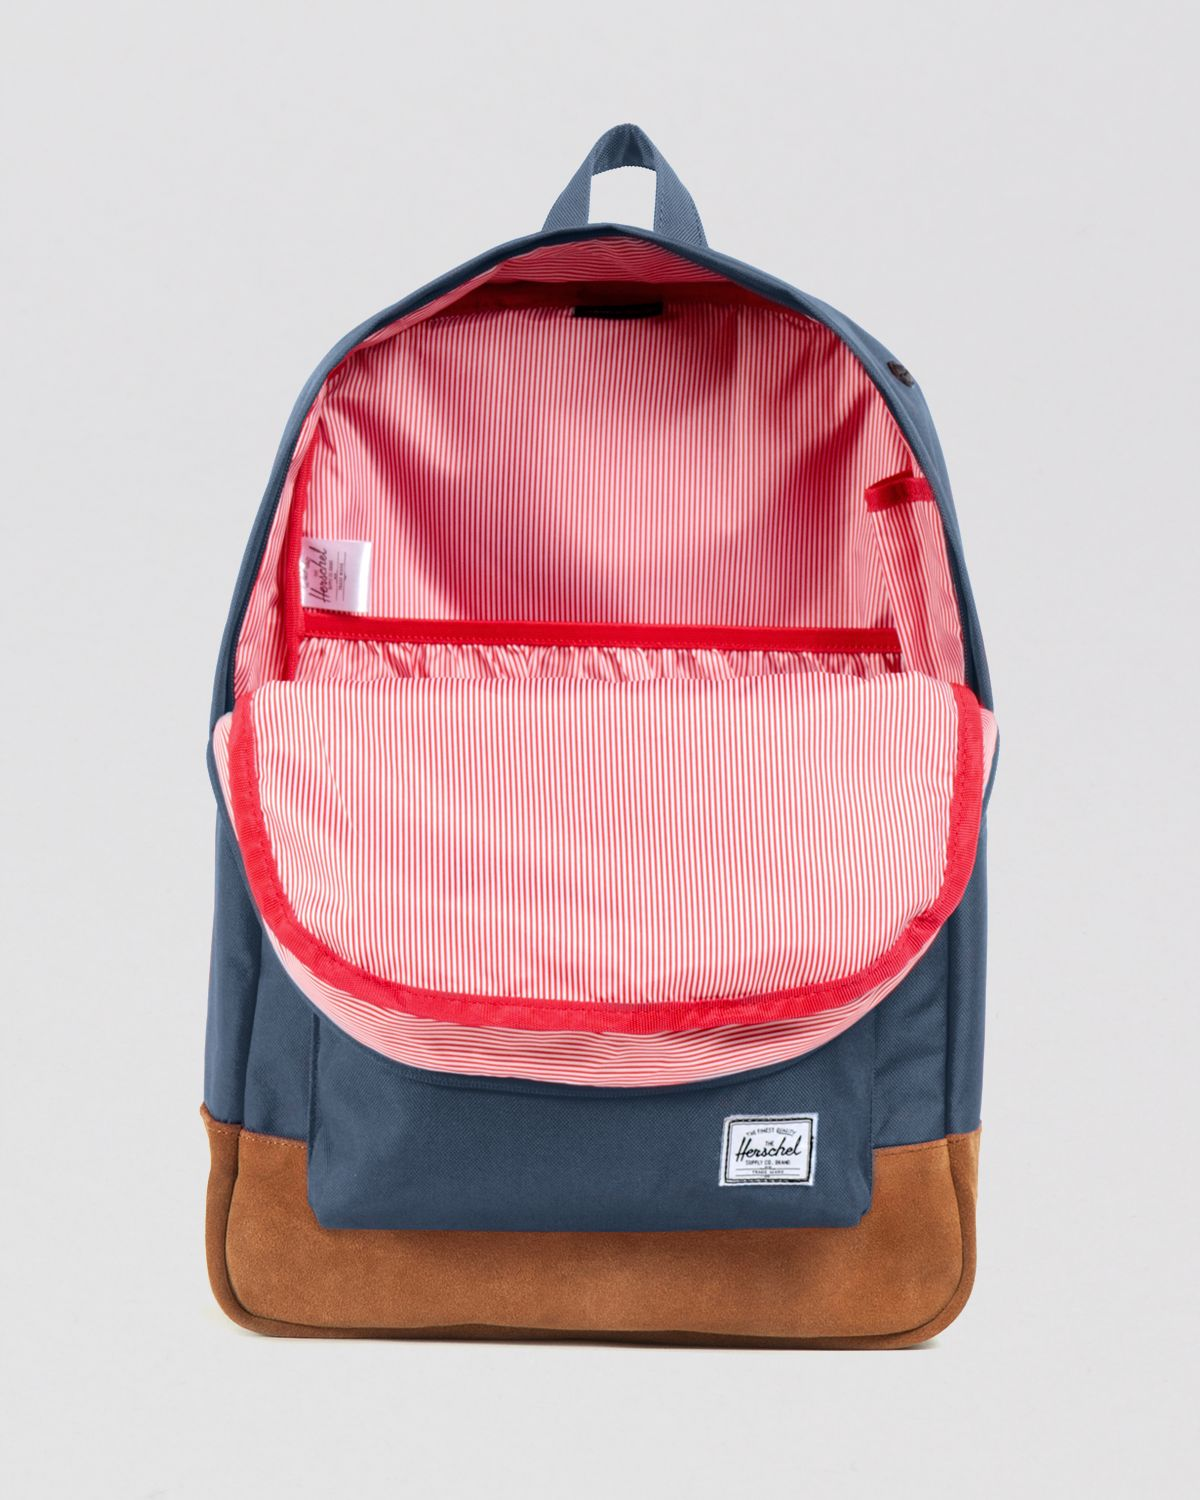 how to clean herschel bag